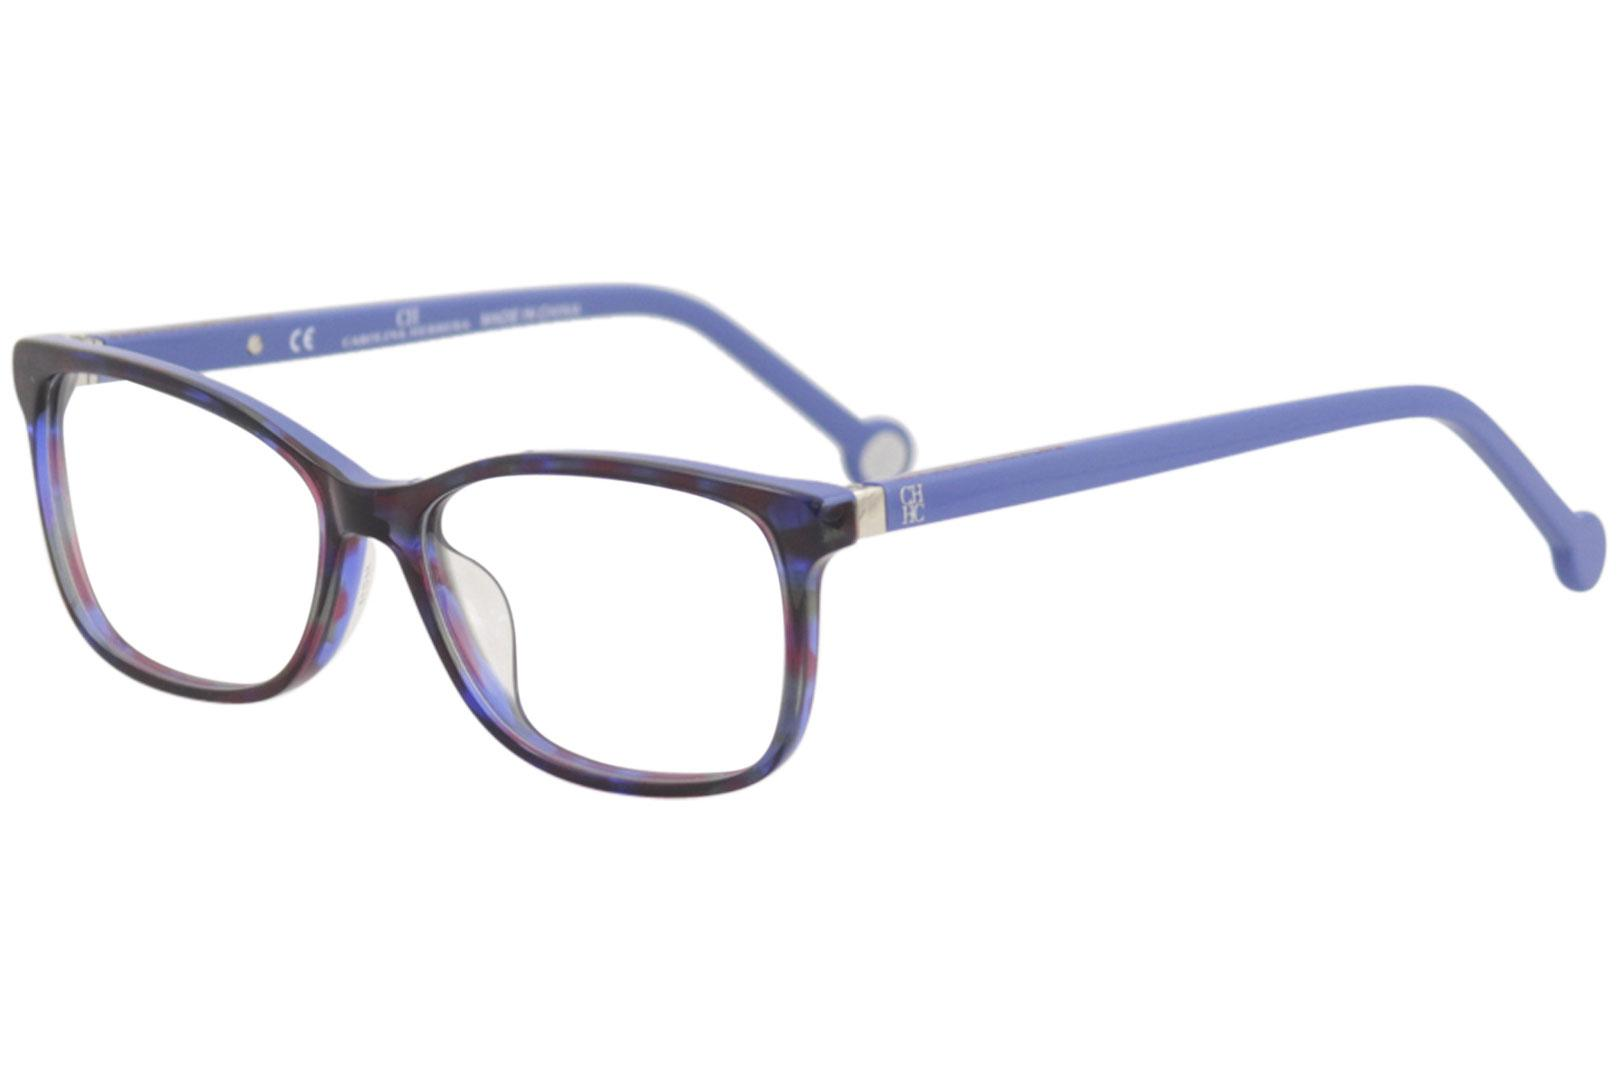 Image of - Blue/Tortoise   7QM - Lens 54 Bridge 15 B 36 ED 58 Temple 140mm